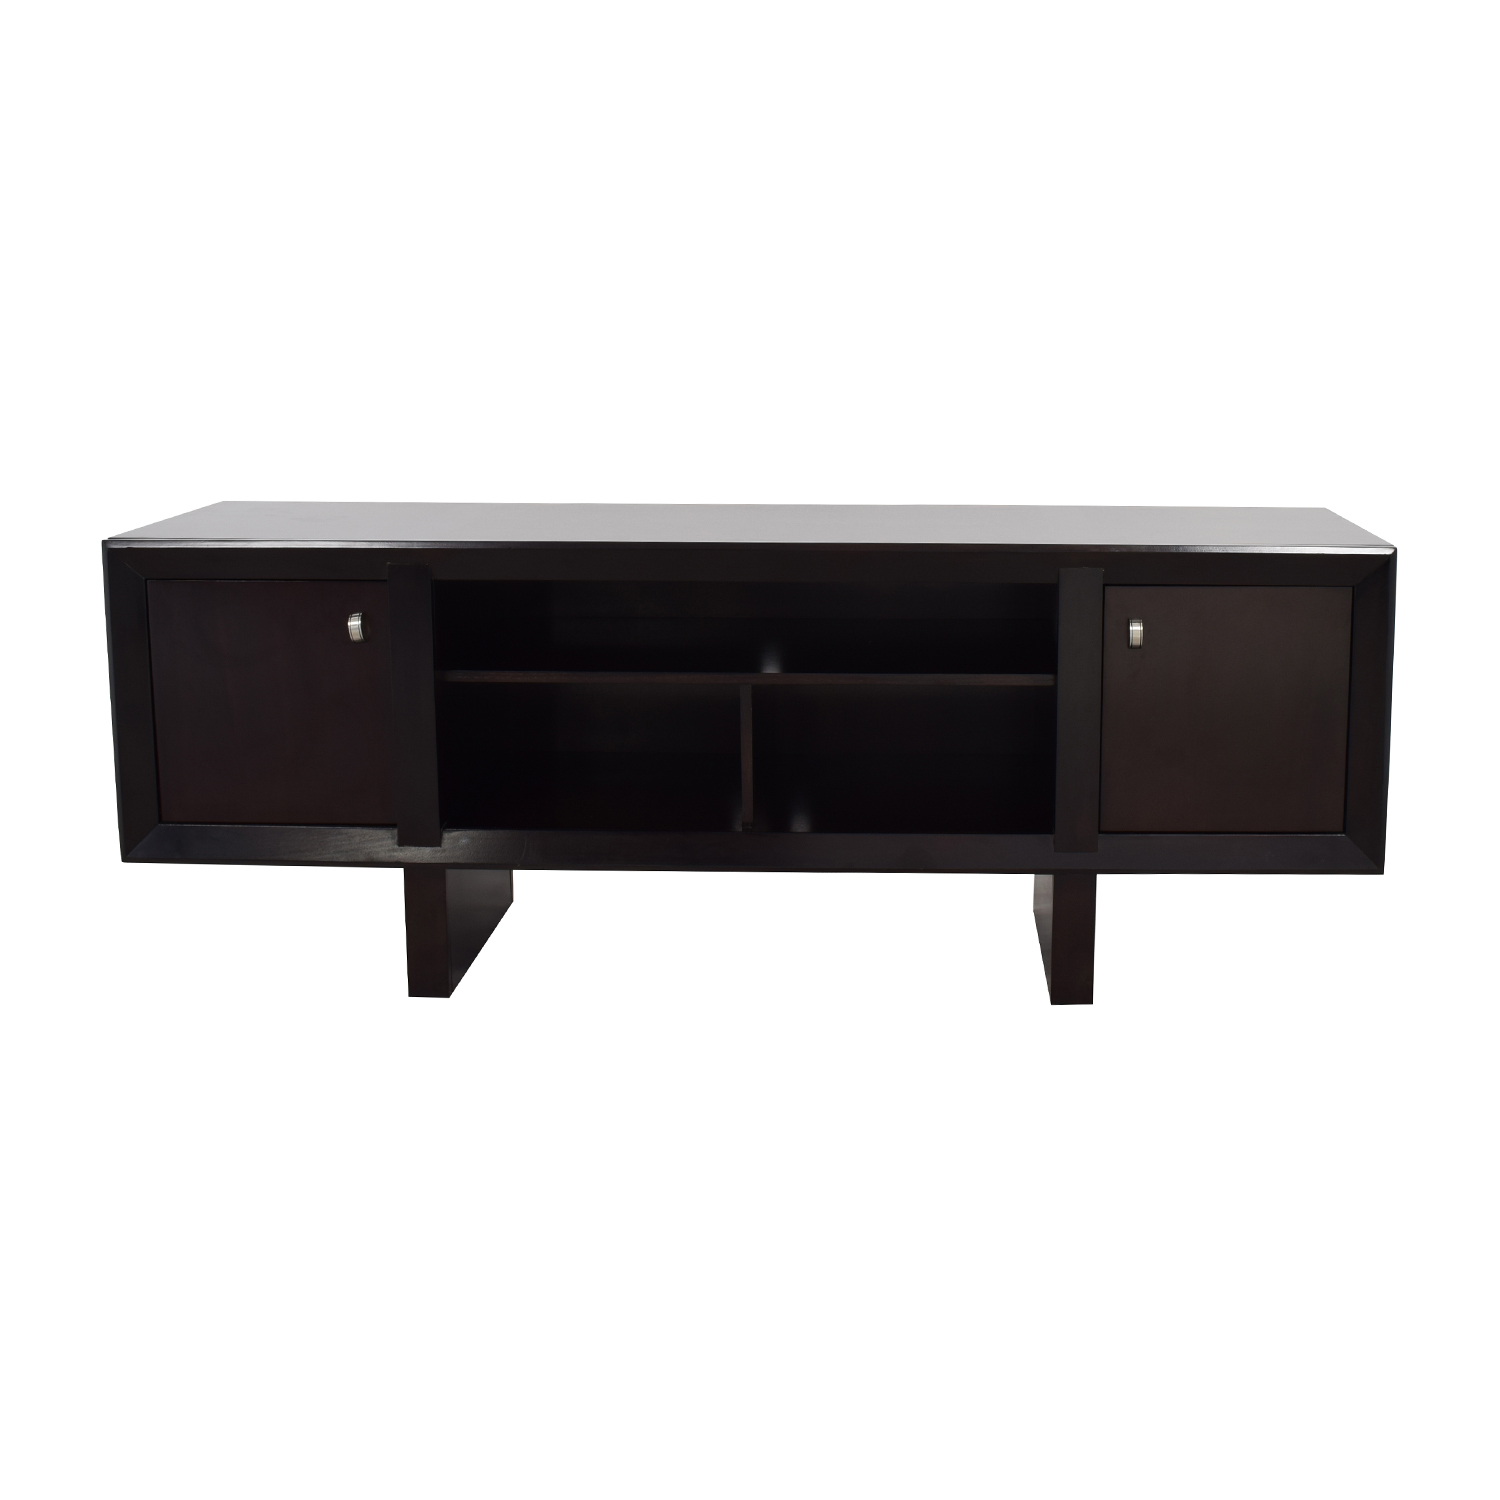 Raymour and Flanigan Raymour & Flanigan Park Avenue Black TV Stand nj